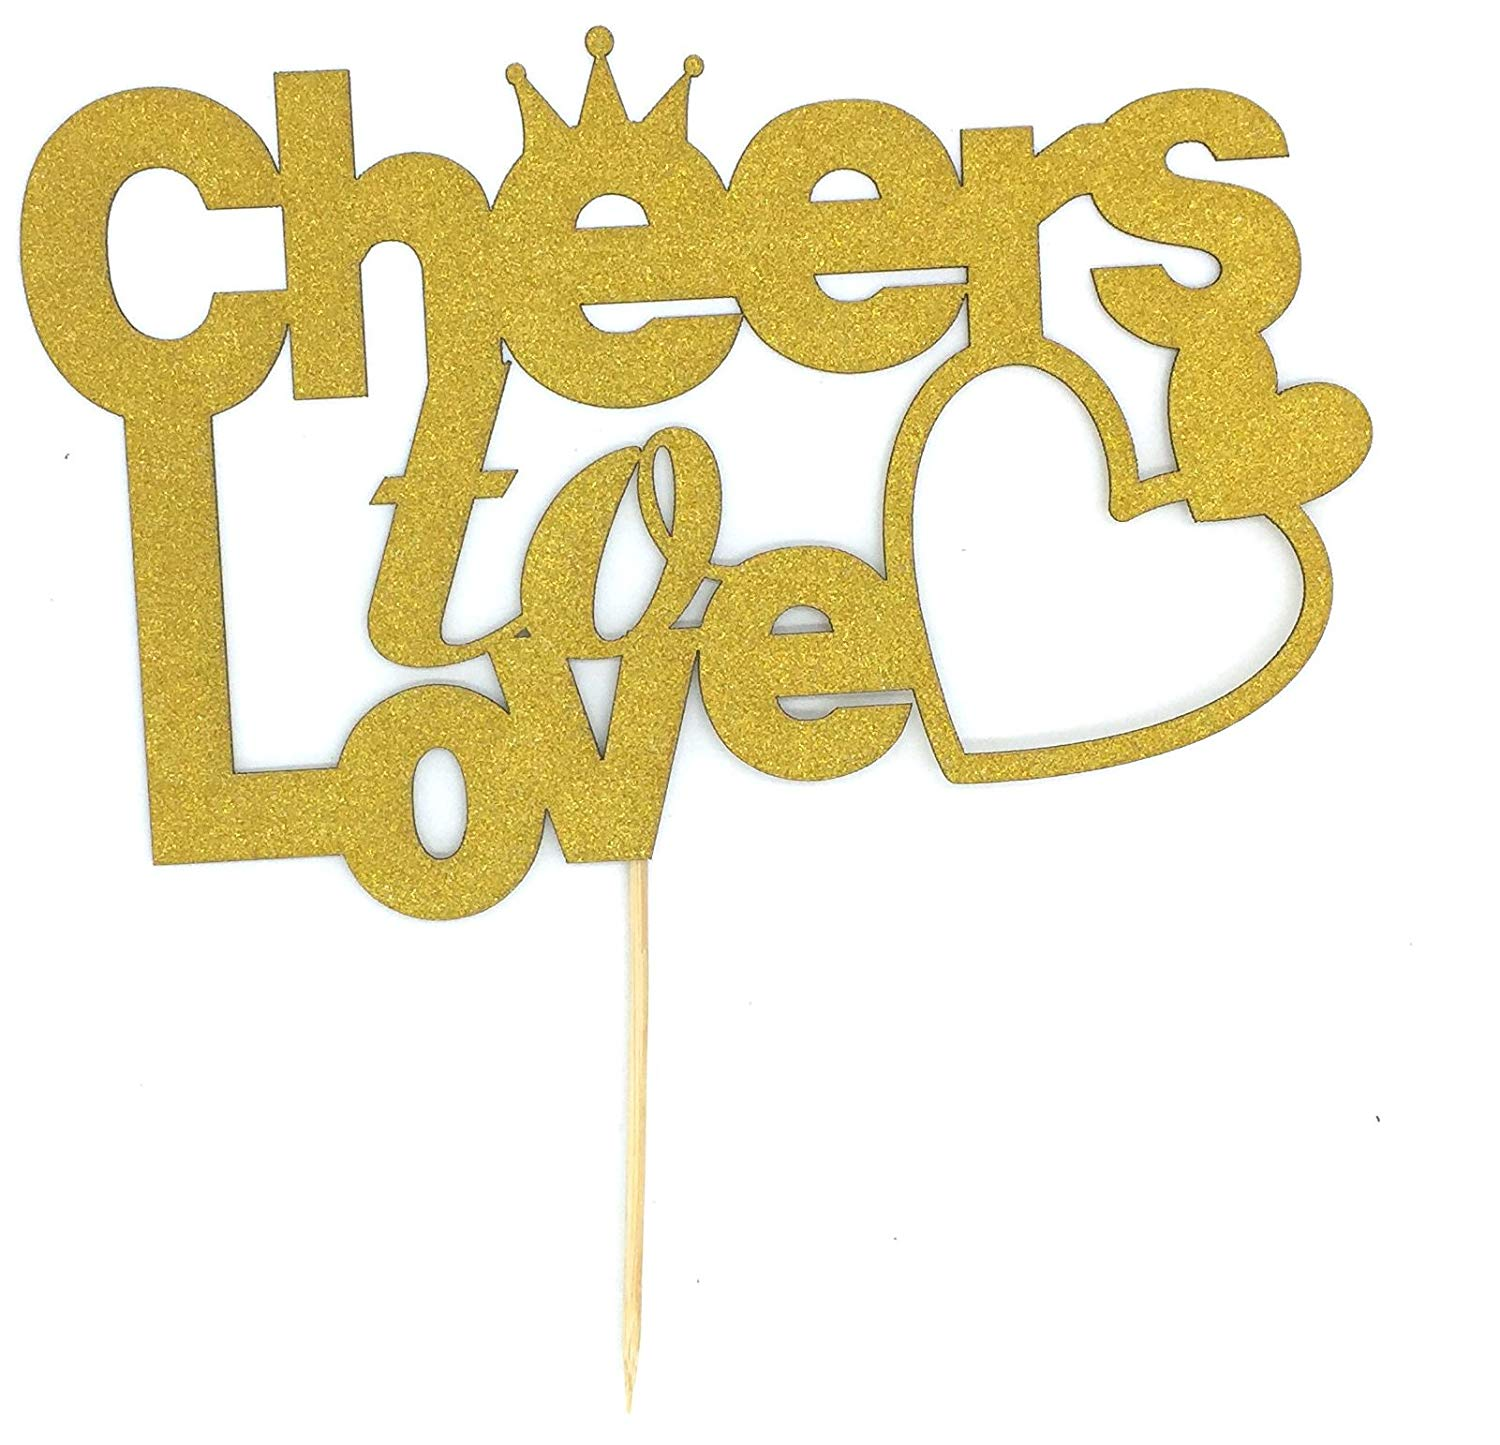 Toomeecrafts Cheers to Love Cake Topper, Cheers to Love Bridal Shower, Bride to Be Cake Topper, Wedding Cake Topper, Engagement Topper, Bachelorette Party Decor, Fall Baby Shower Set of 2